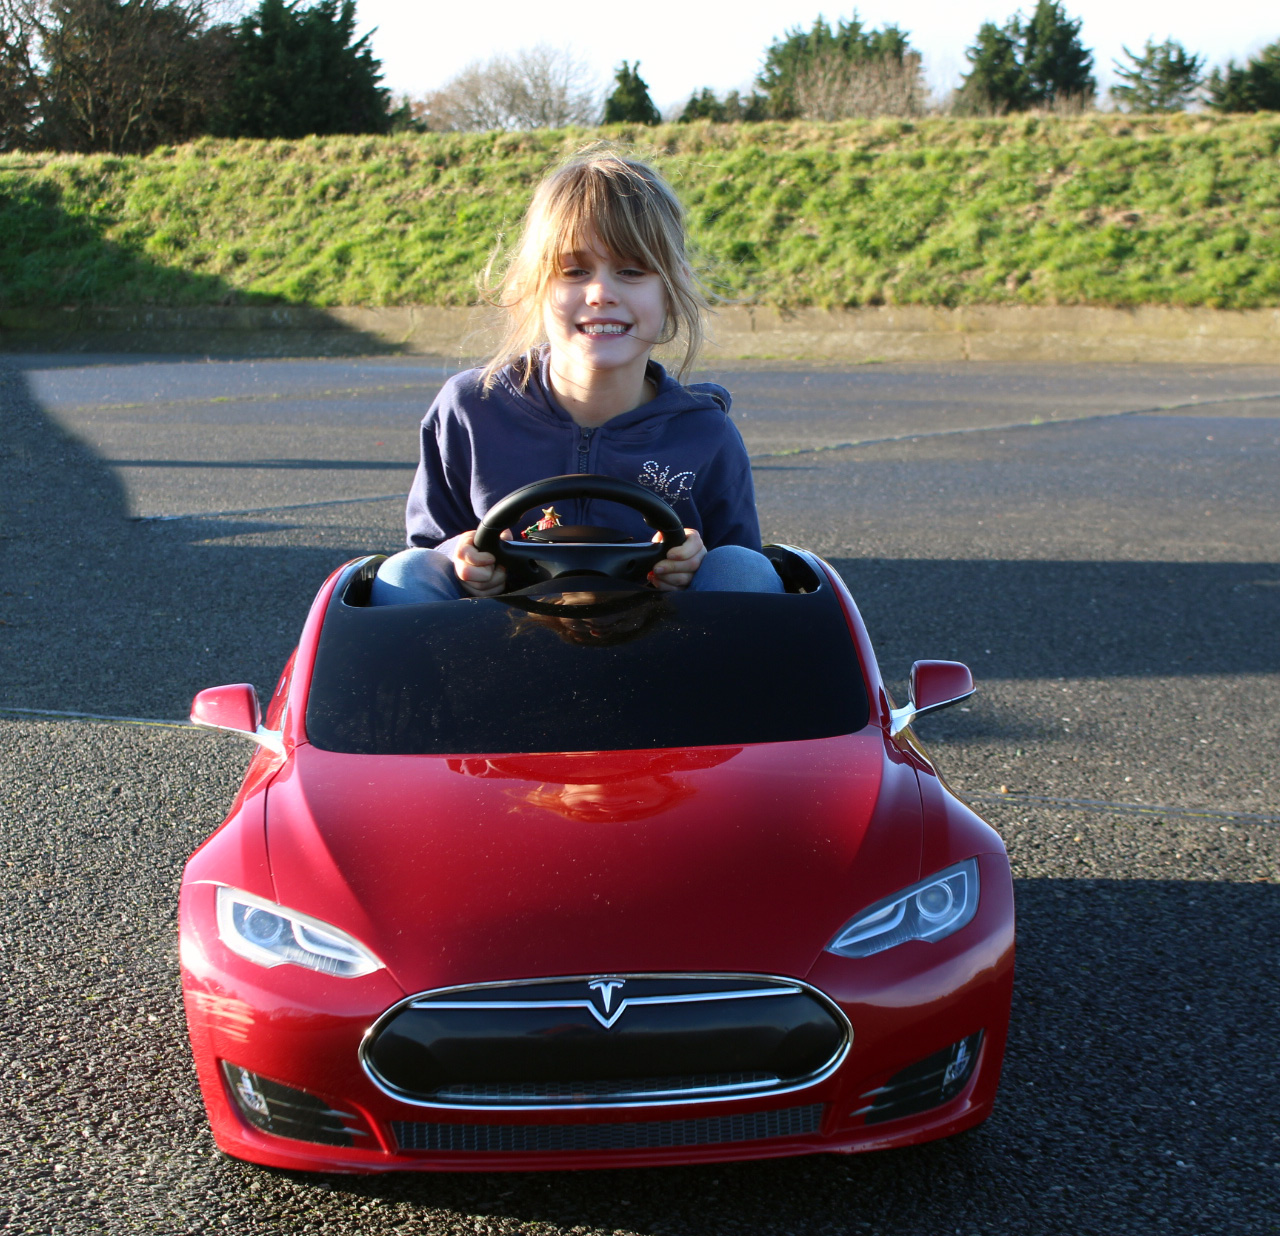 Tesla Model S, Tesla Model S ride on toy, Radio Flyer,